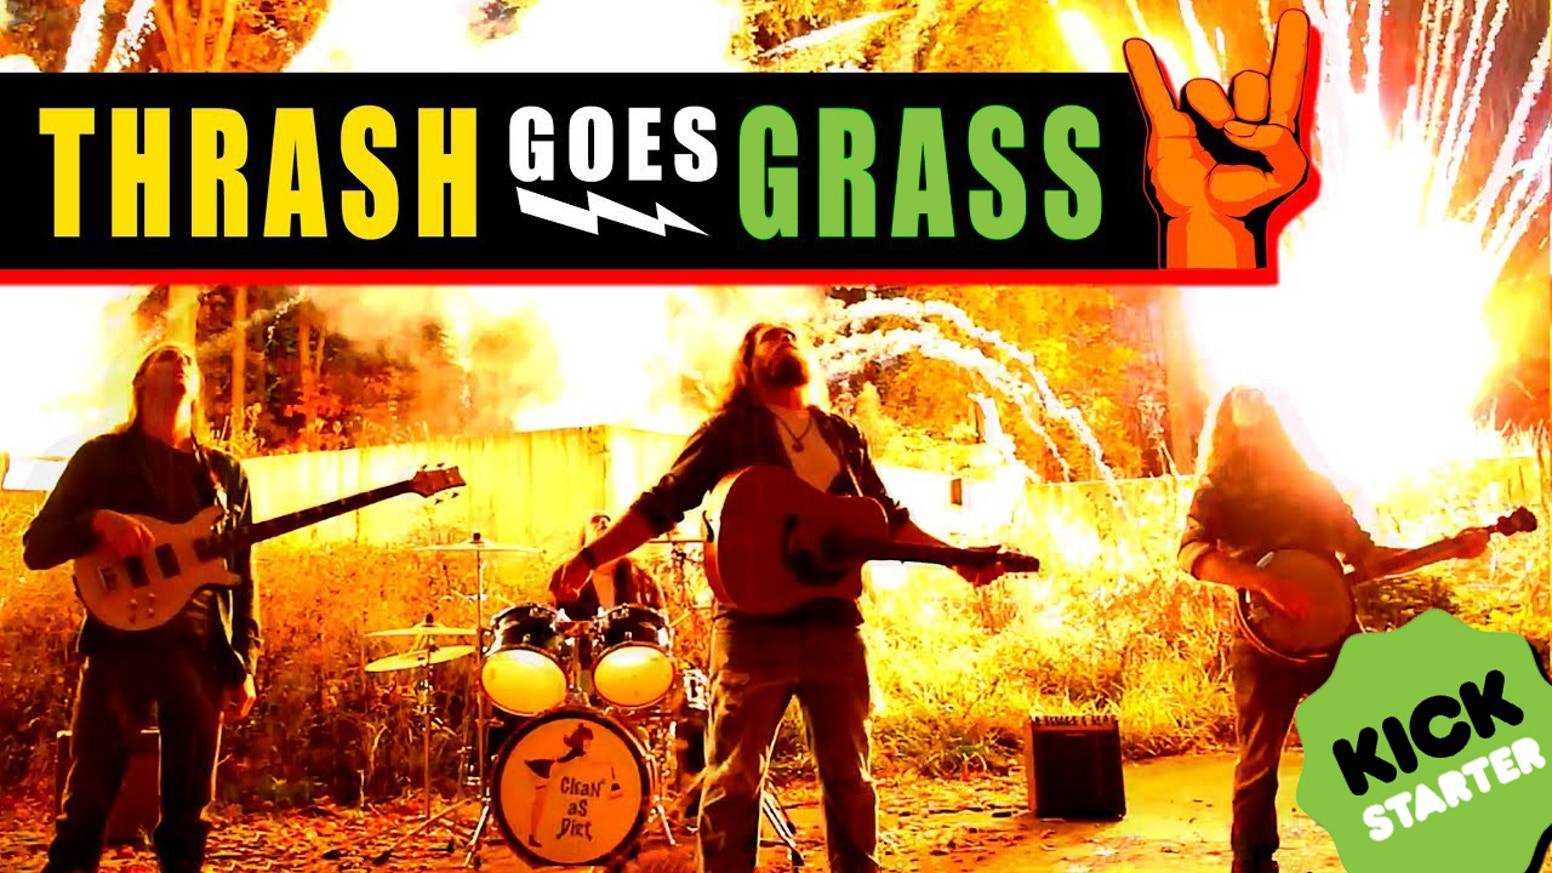 CORPORATE RECORD LABELS wanted to change our sound; we WILL NOT let them!  Help us bring THRASH GRASS to the world!